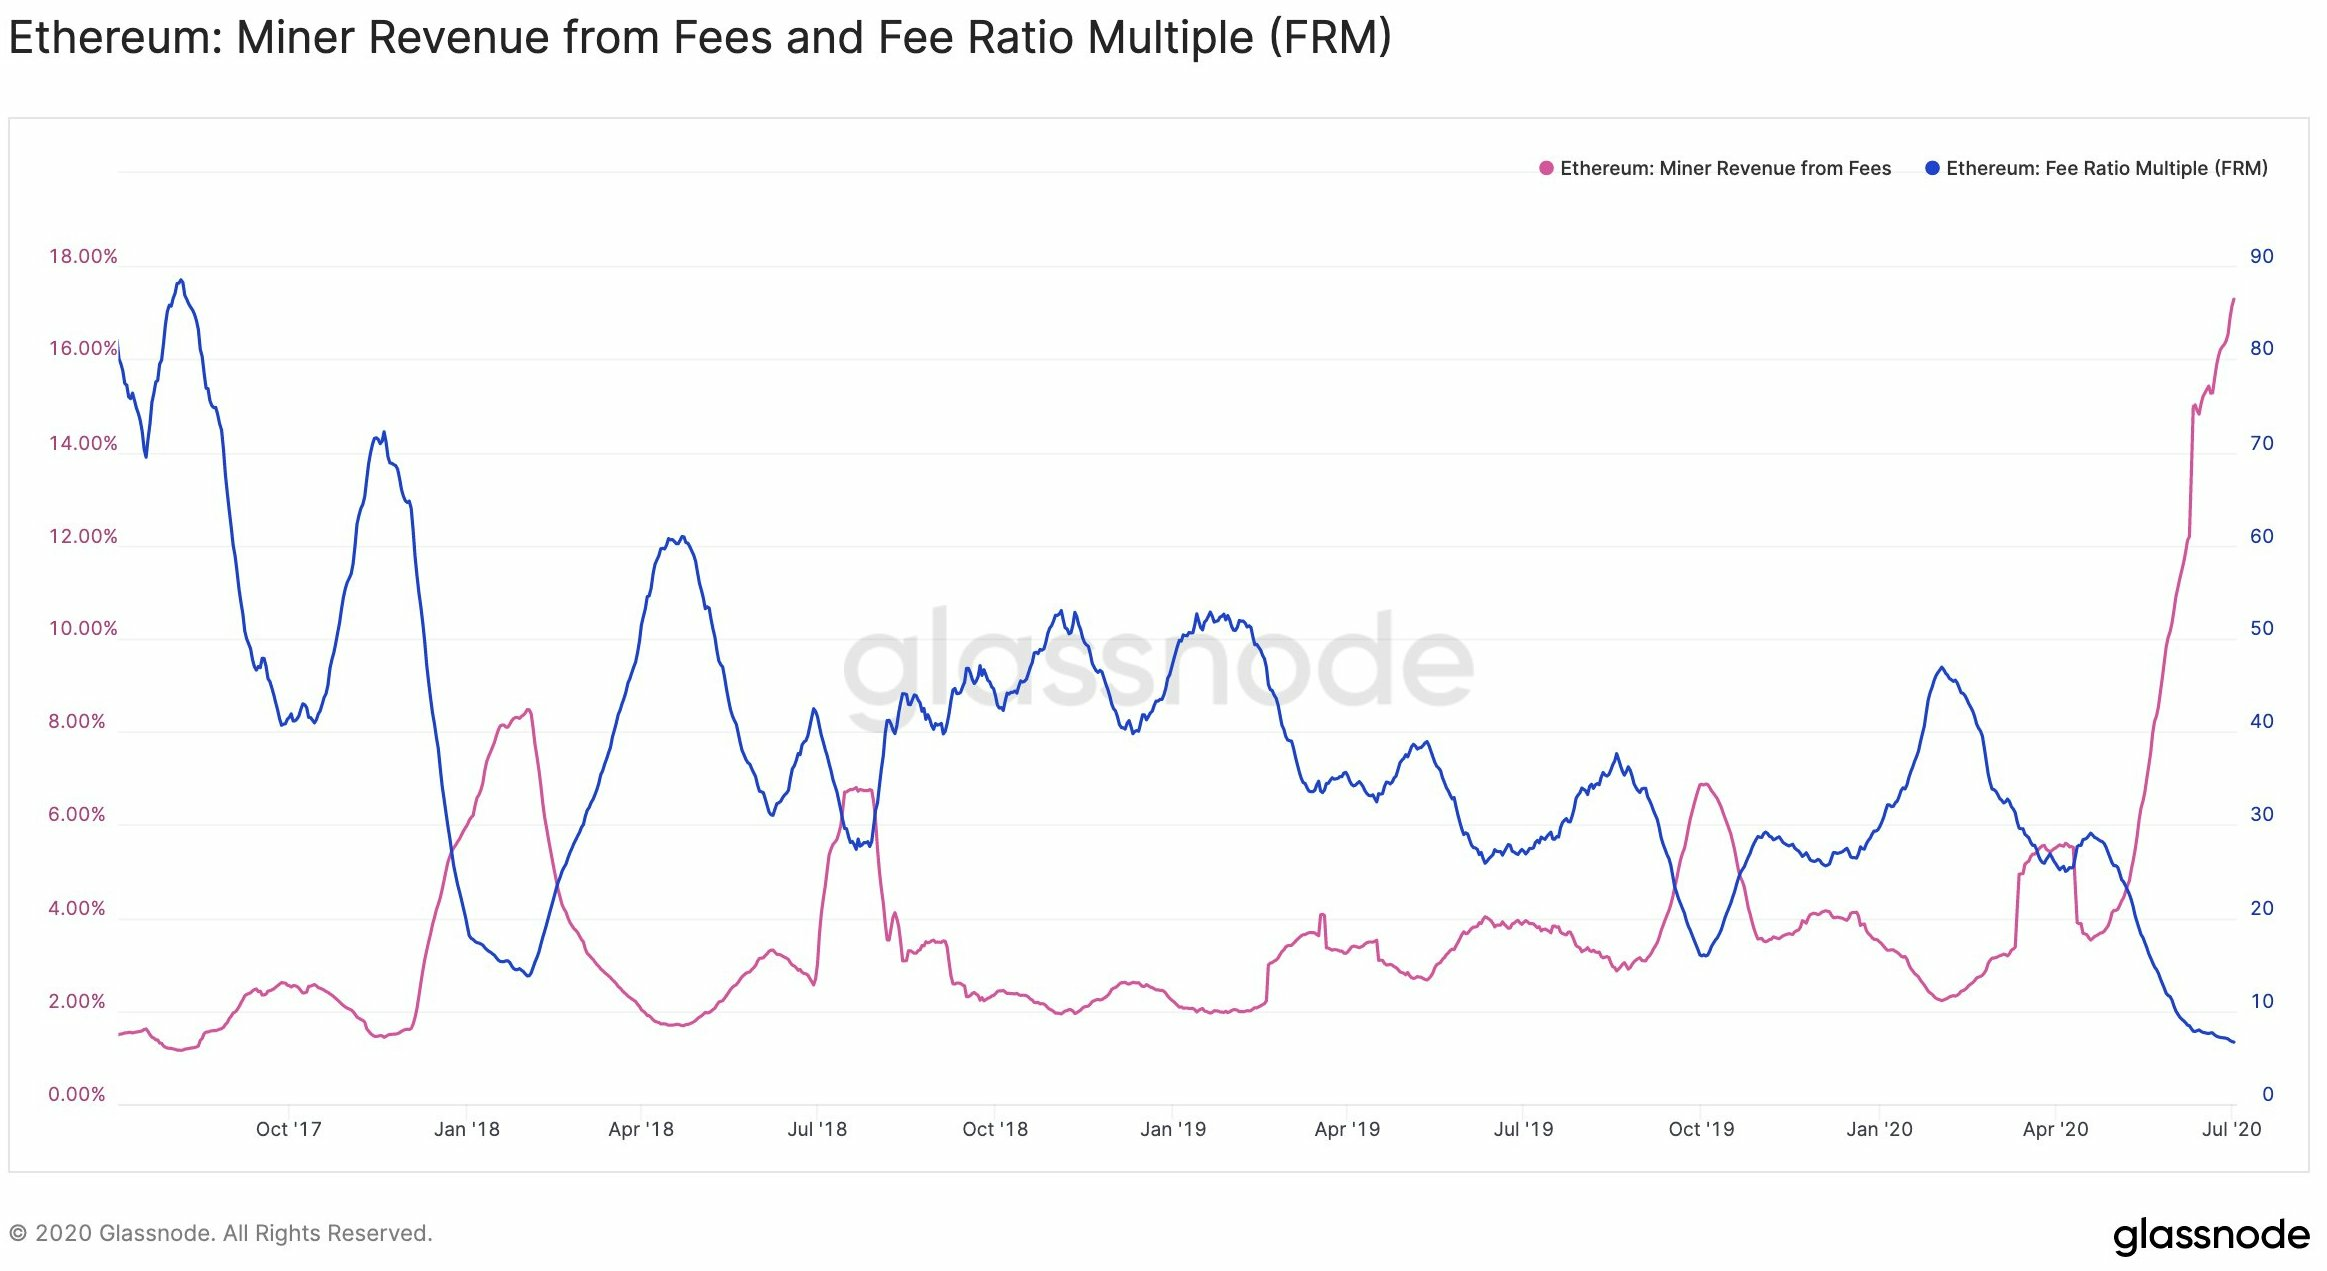 ETH Miner revenue from fees